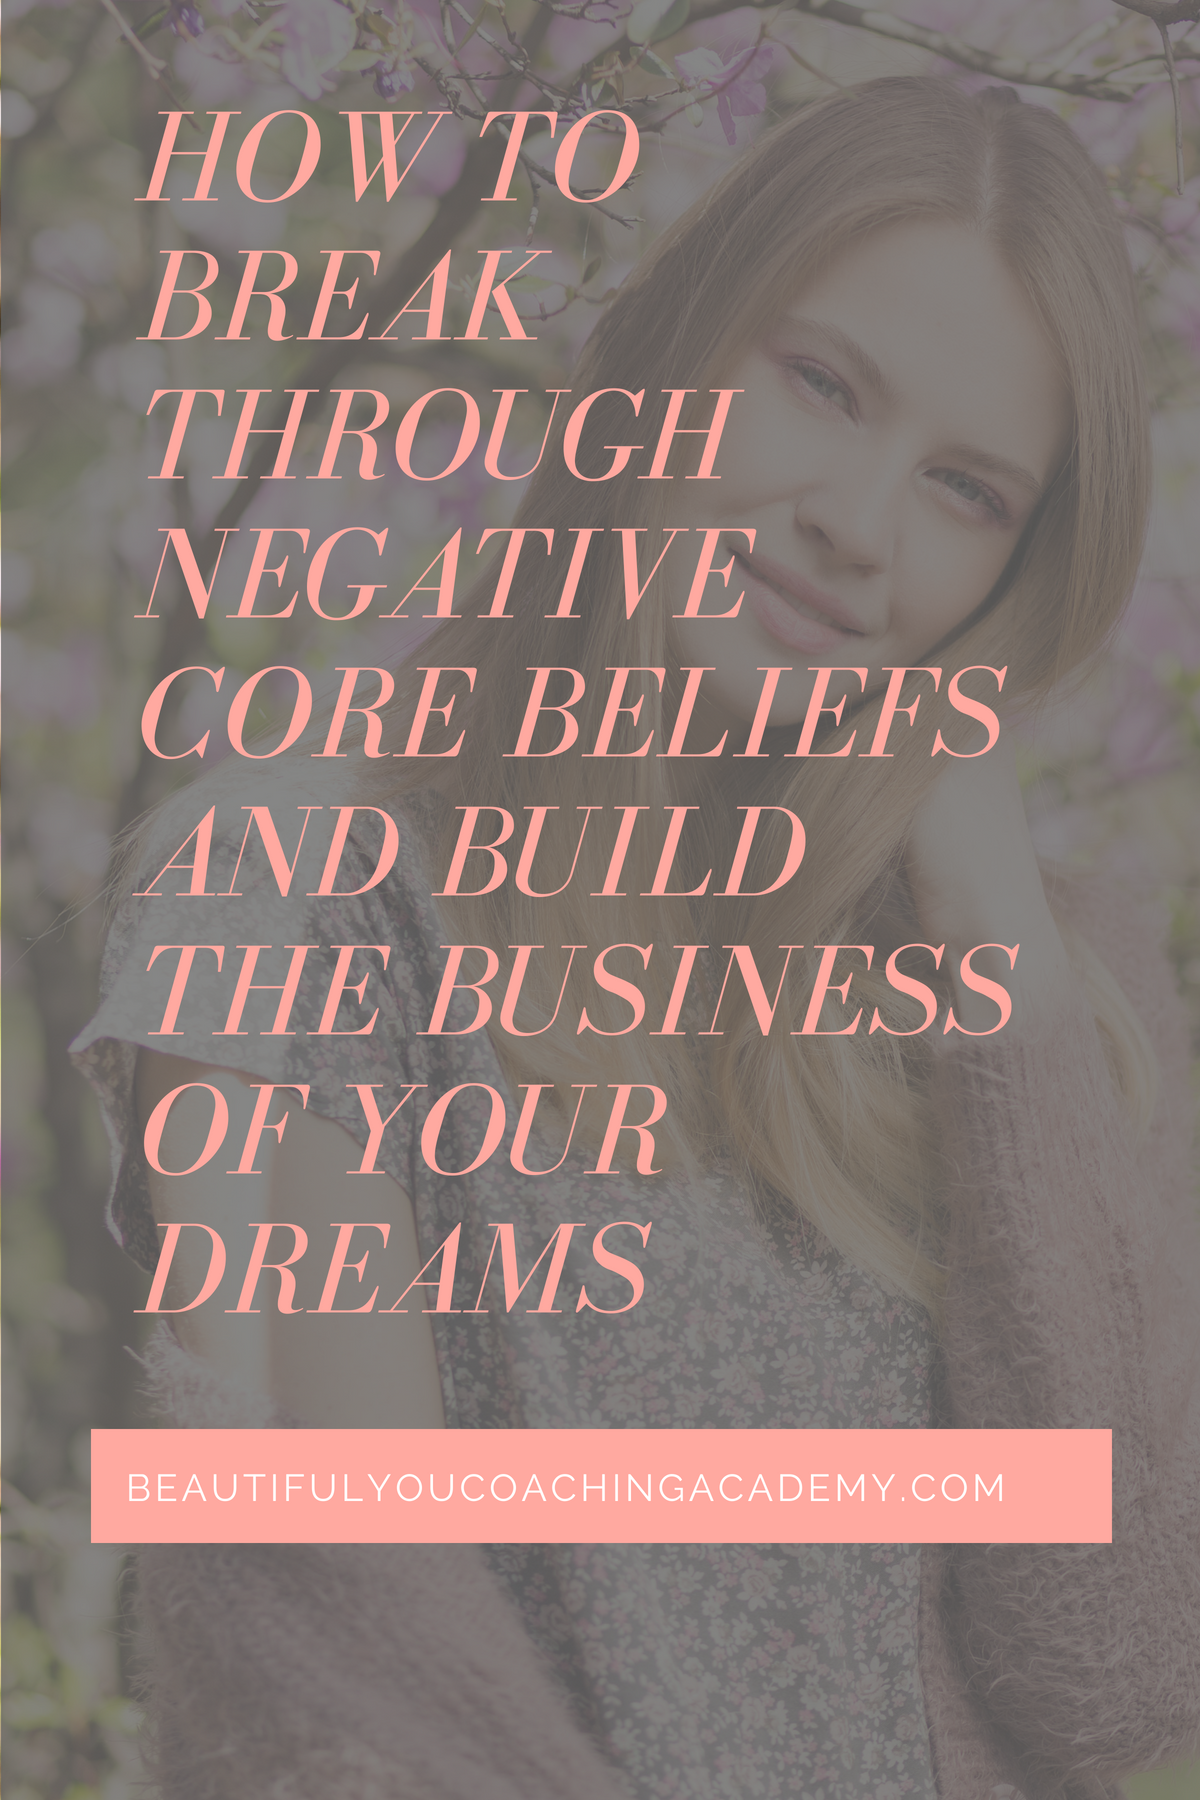 How To Break Through Negative Core Beliefs And Build The